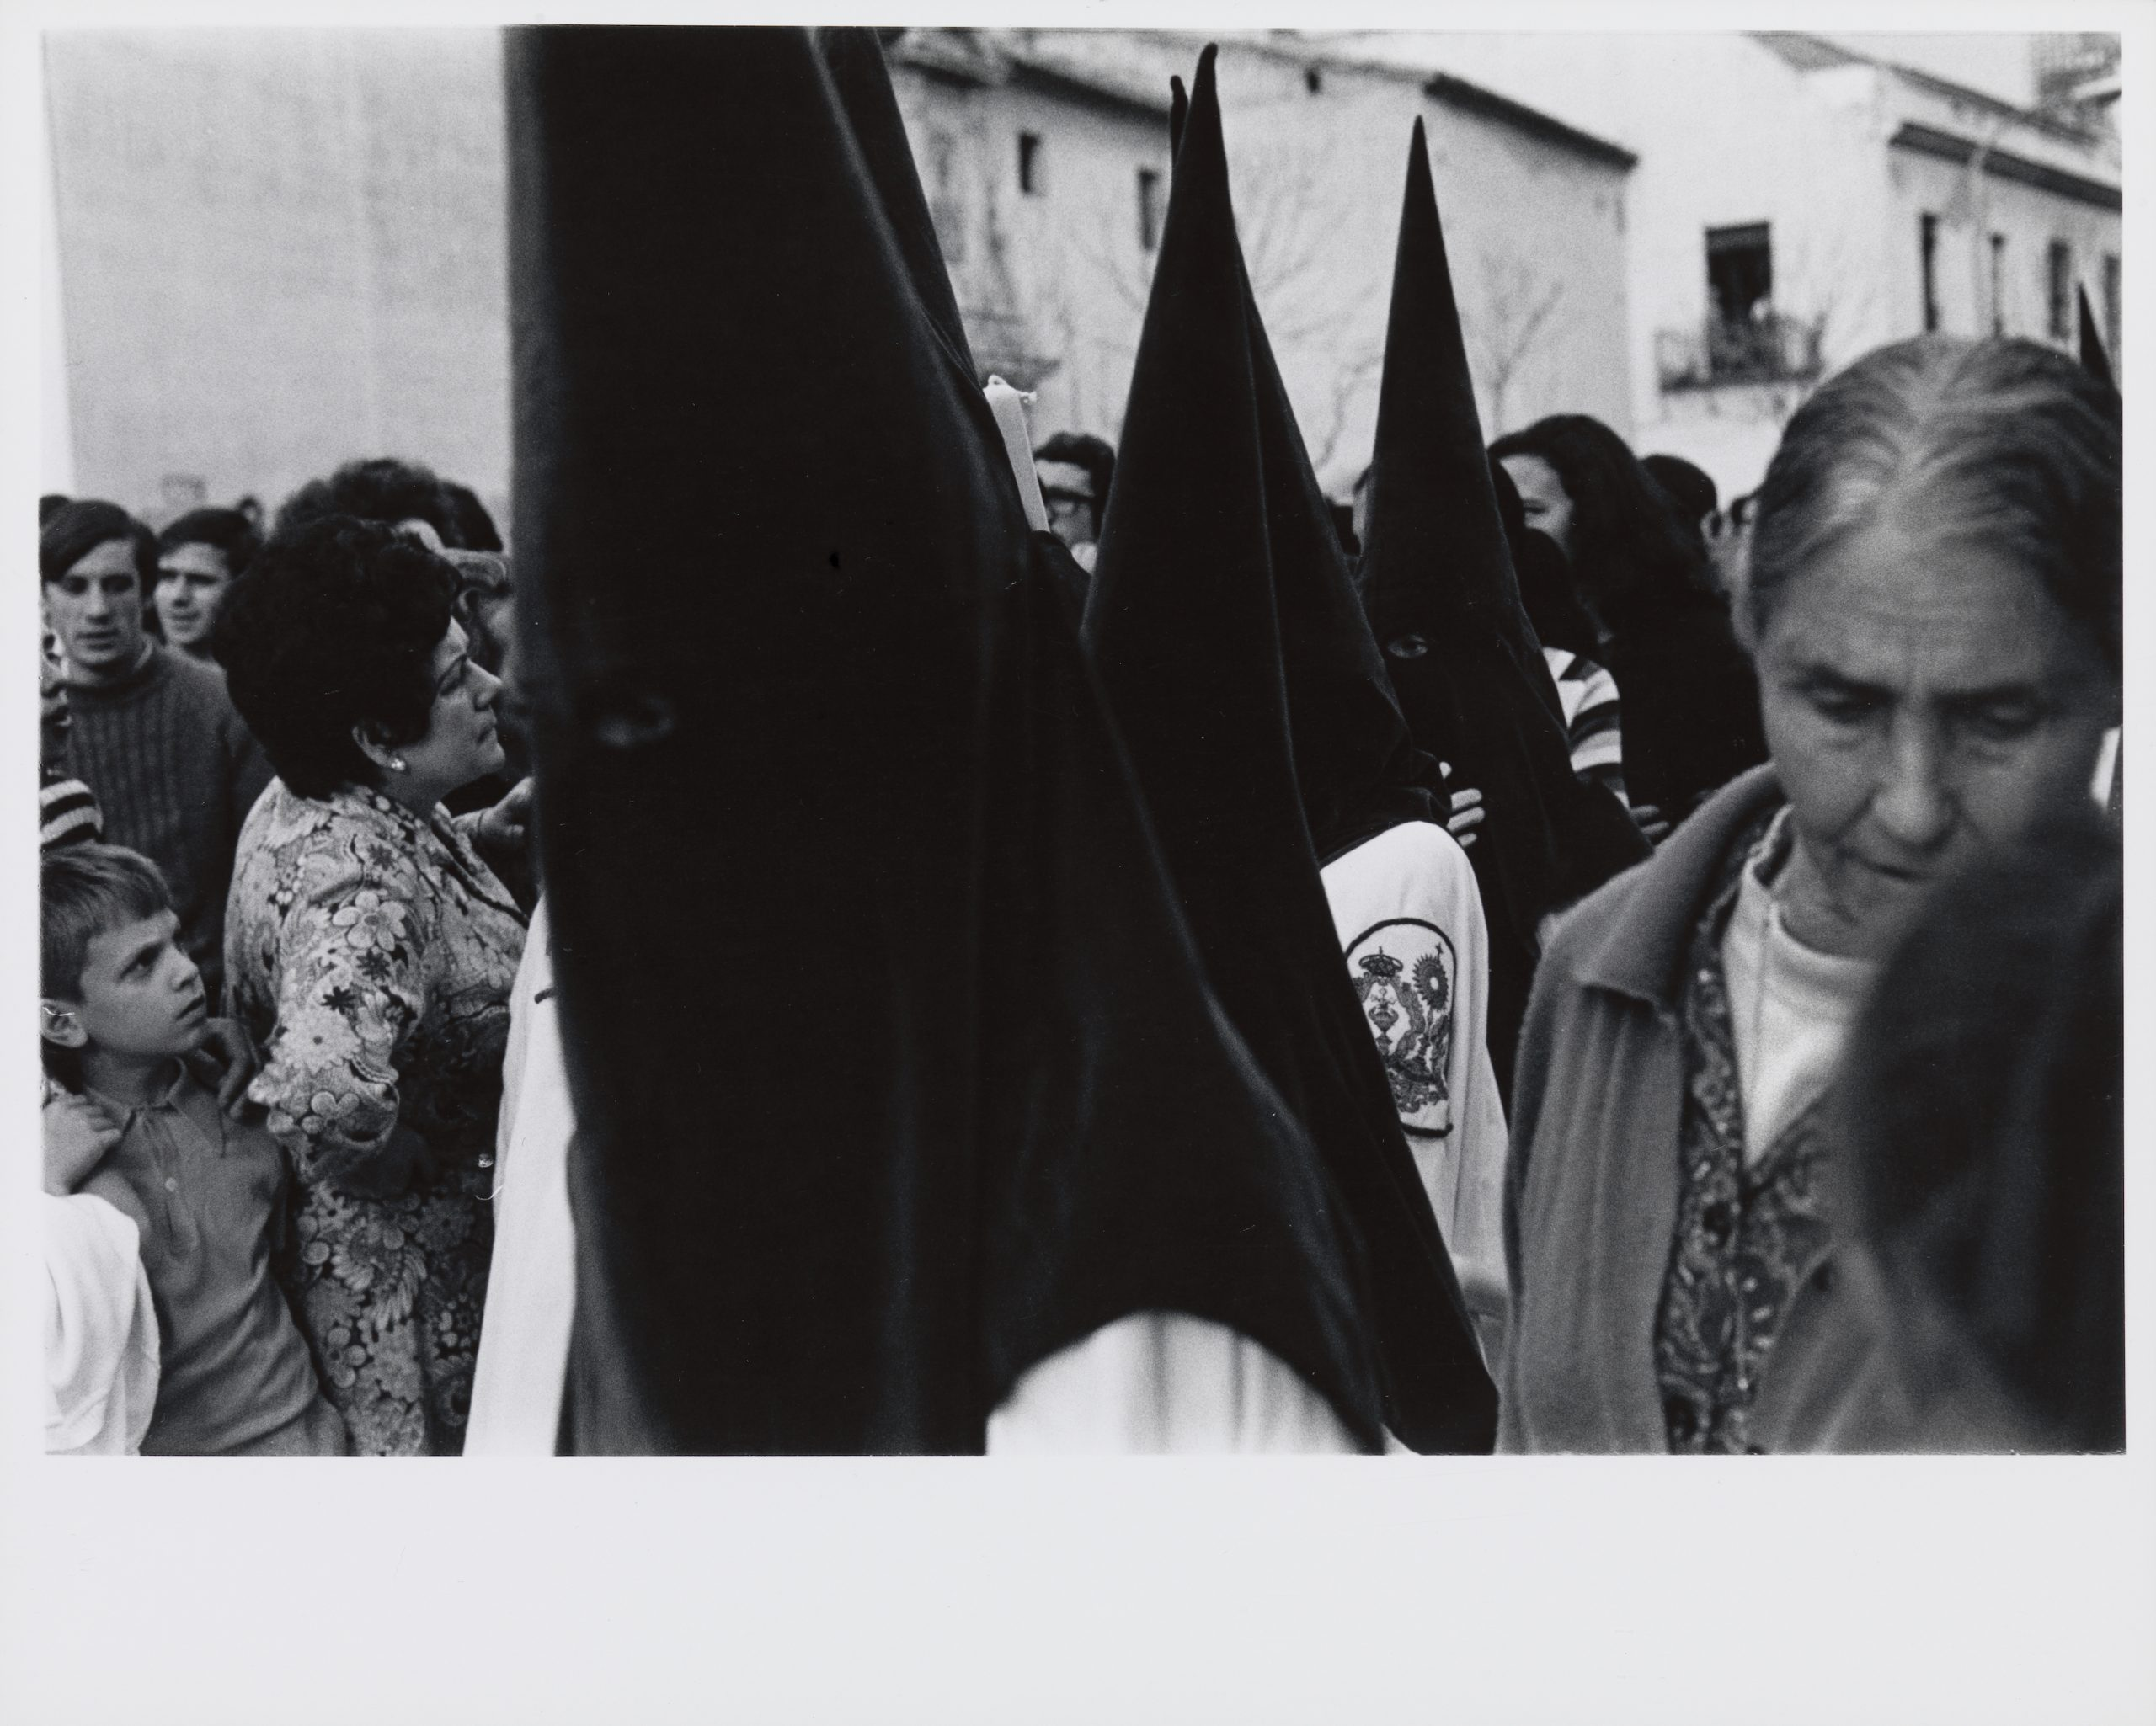 A black and white photograph of a procession of hooded penitents in Seville, Spain during Holy Week.